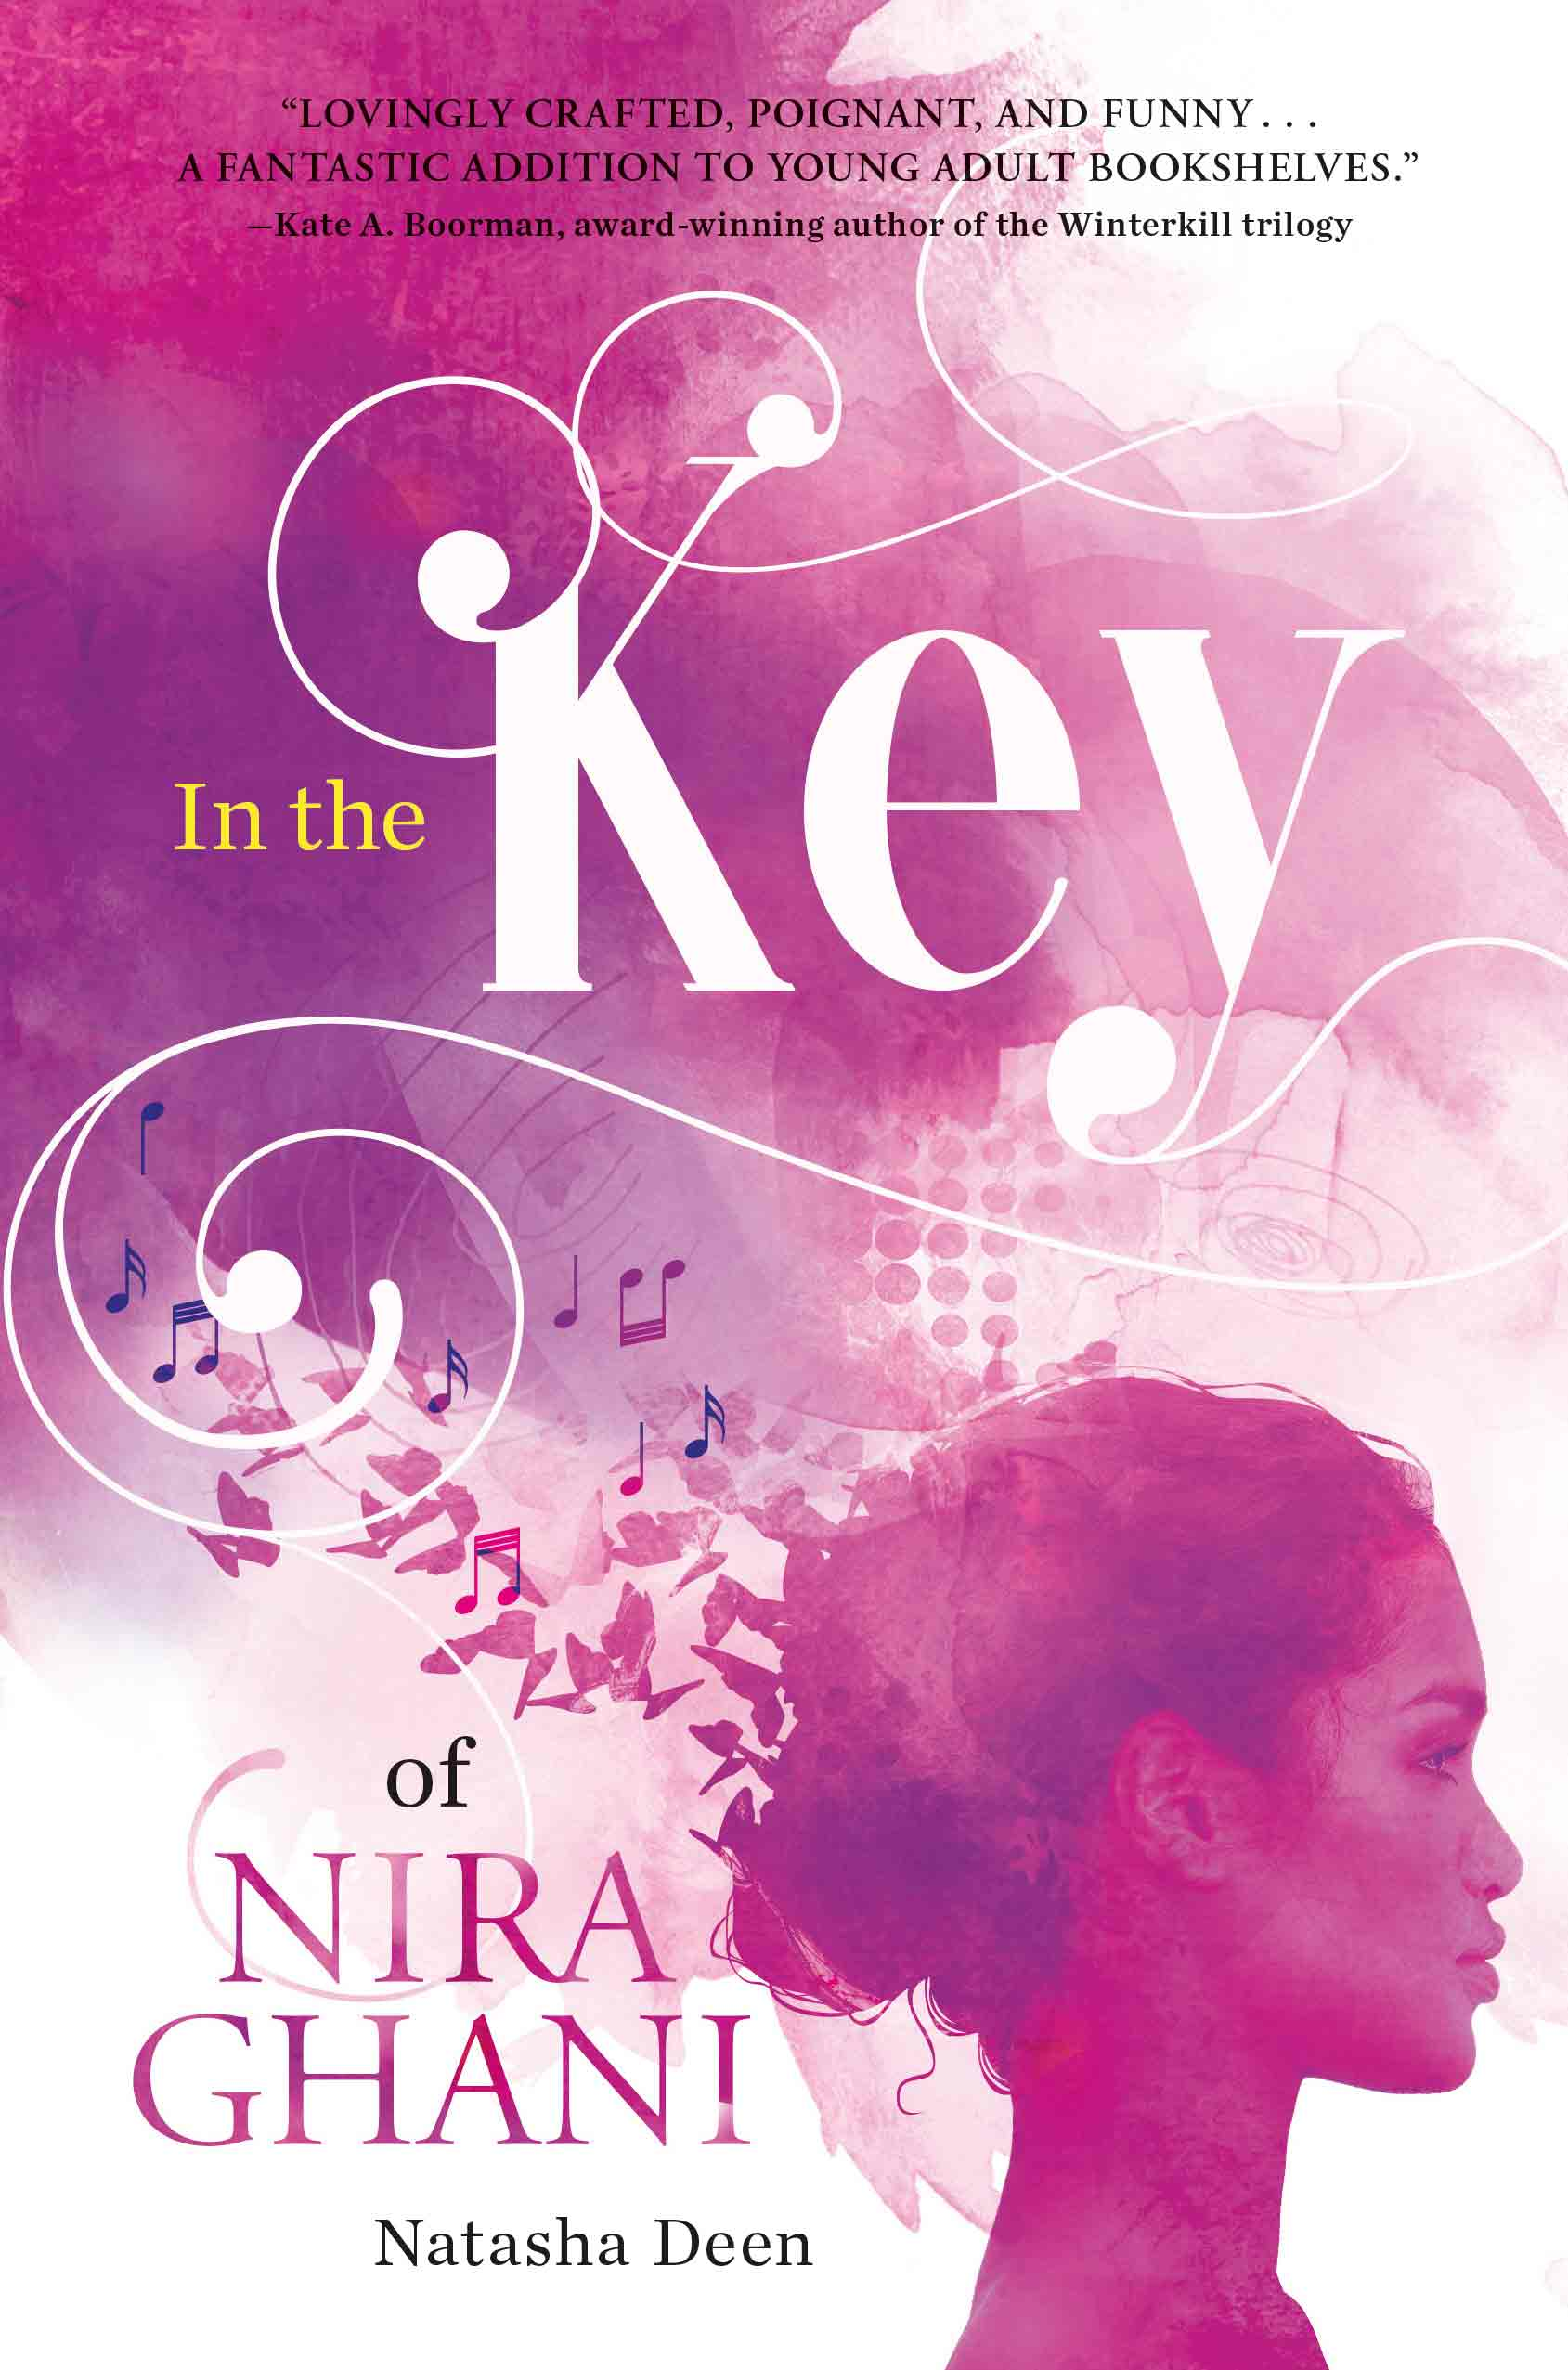 In the Key by author Natasha Deen